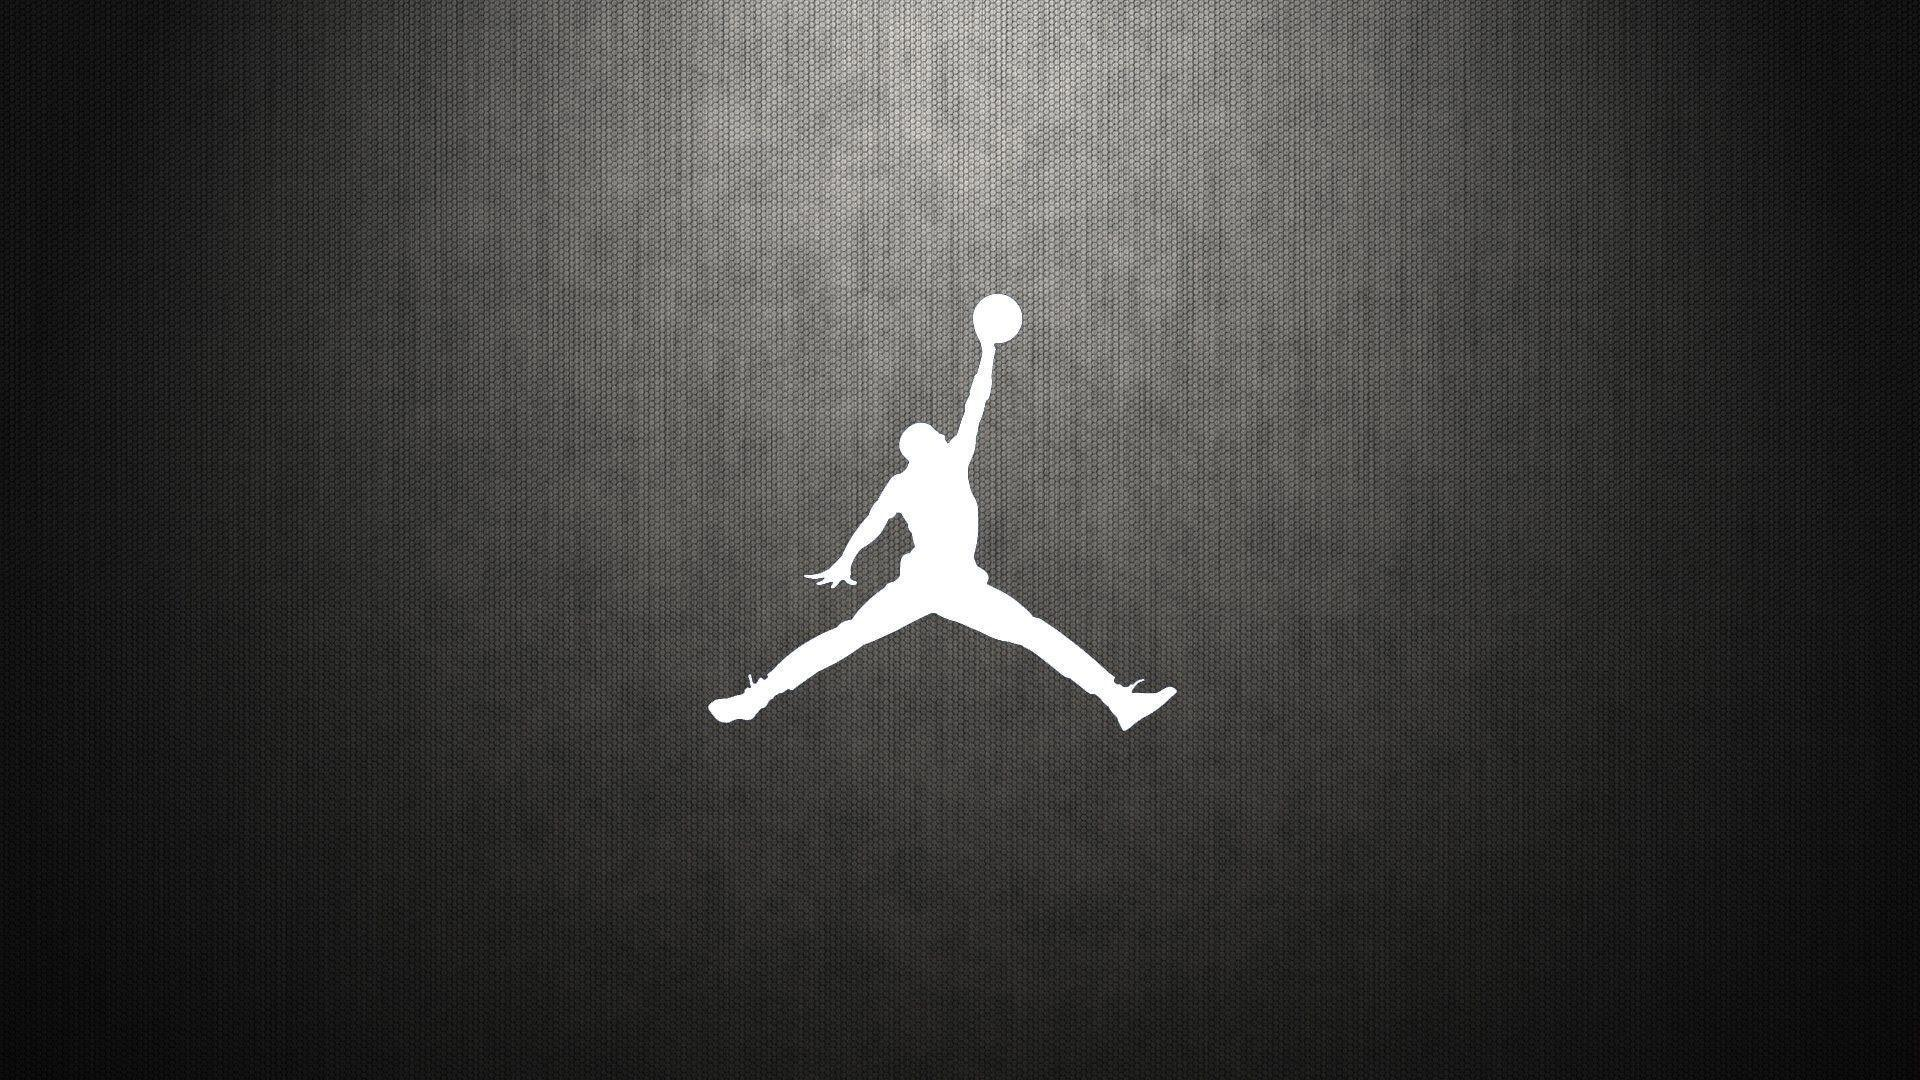 Image For > Jordan 23 Logo Wallpapers